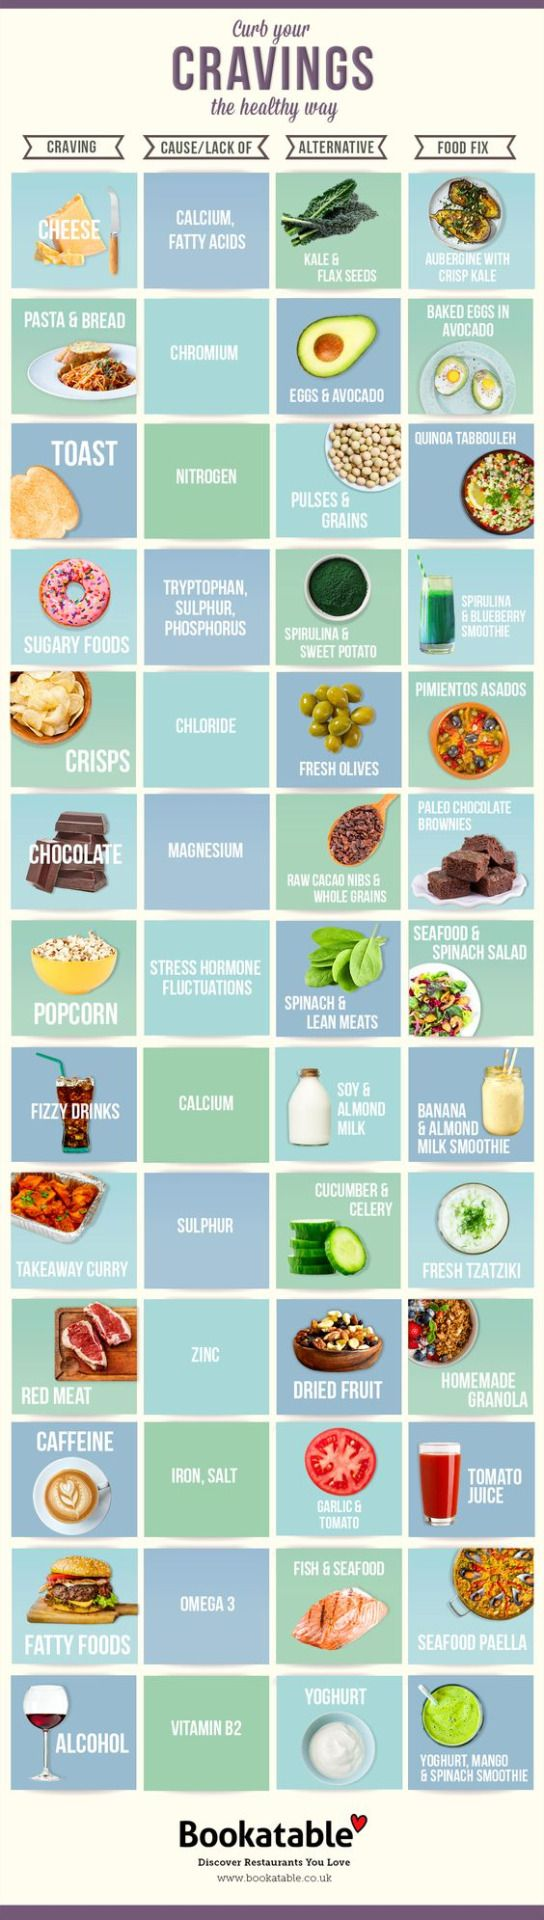 Weight Watchers For One : Photo